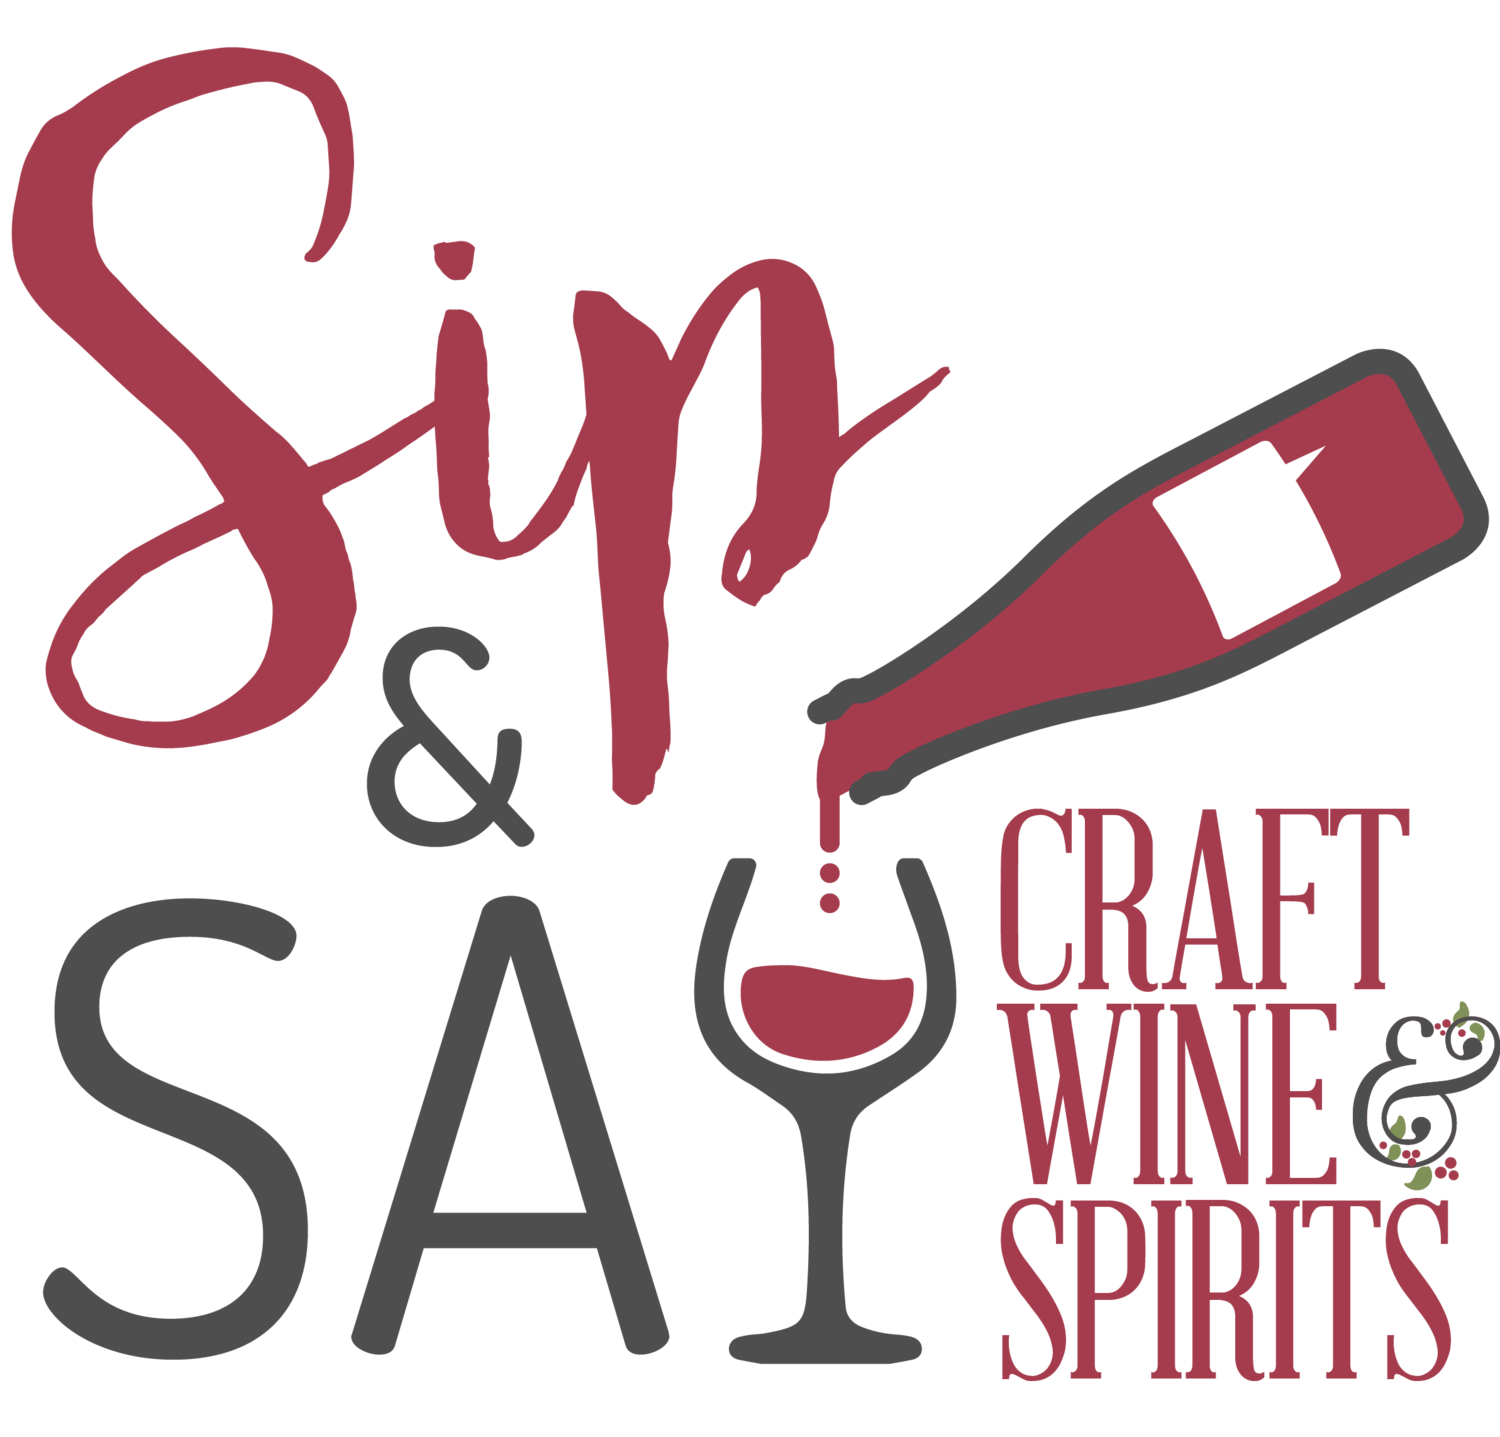 Spirit clipart wine spirit. Sip say craft spirits